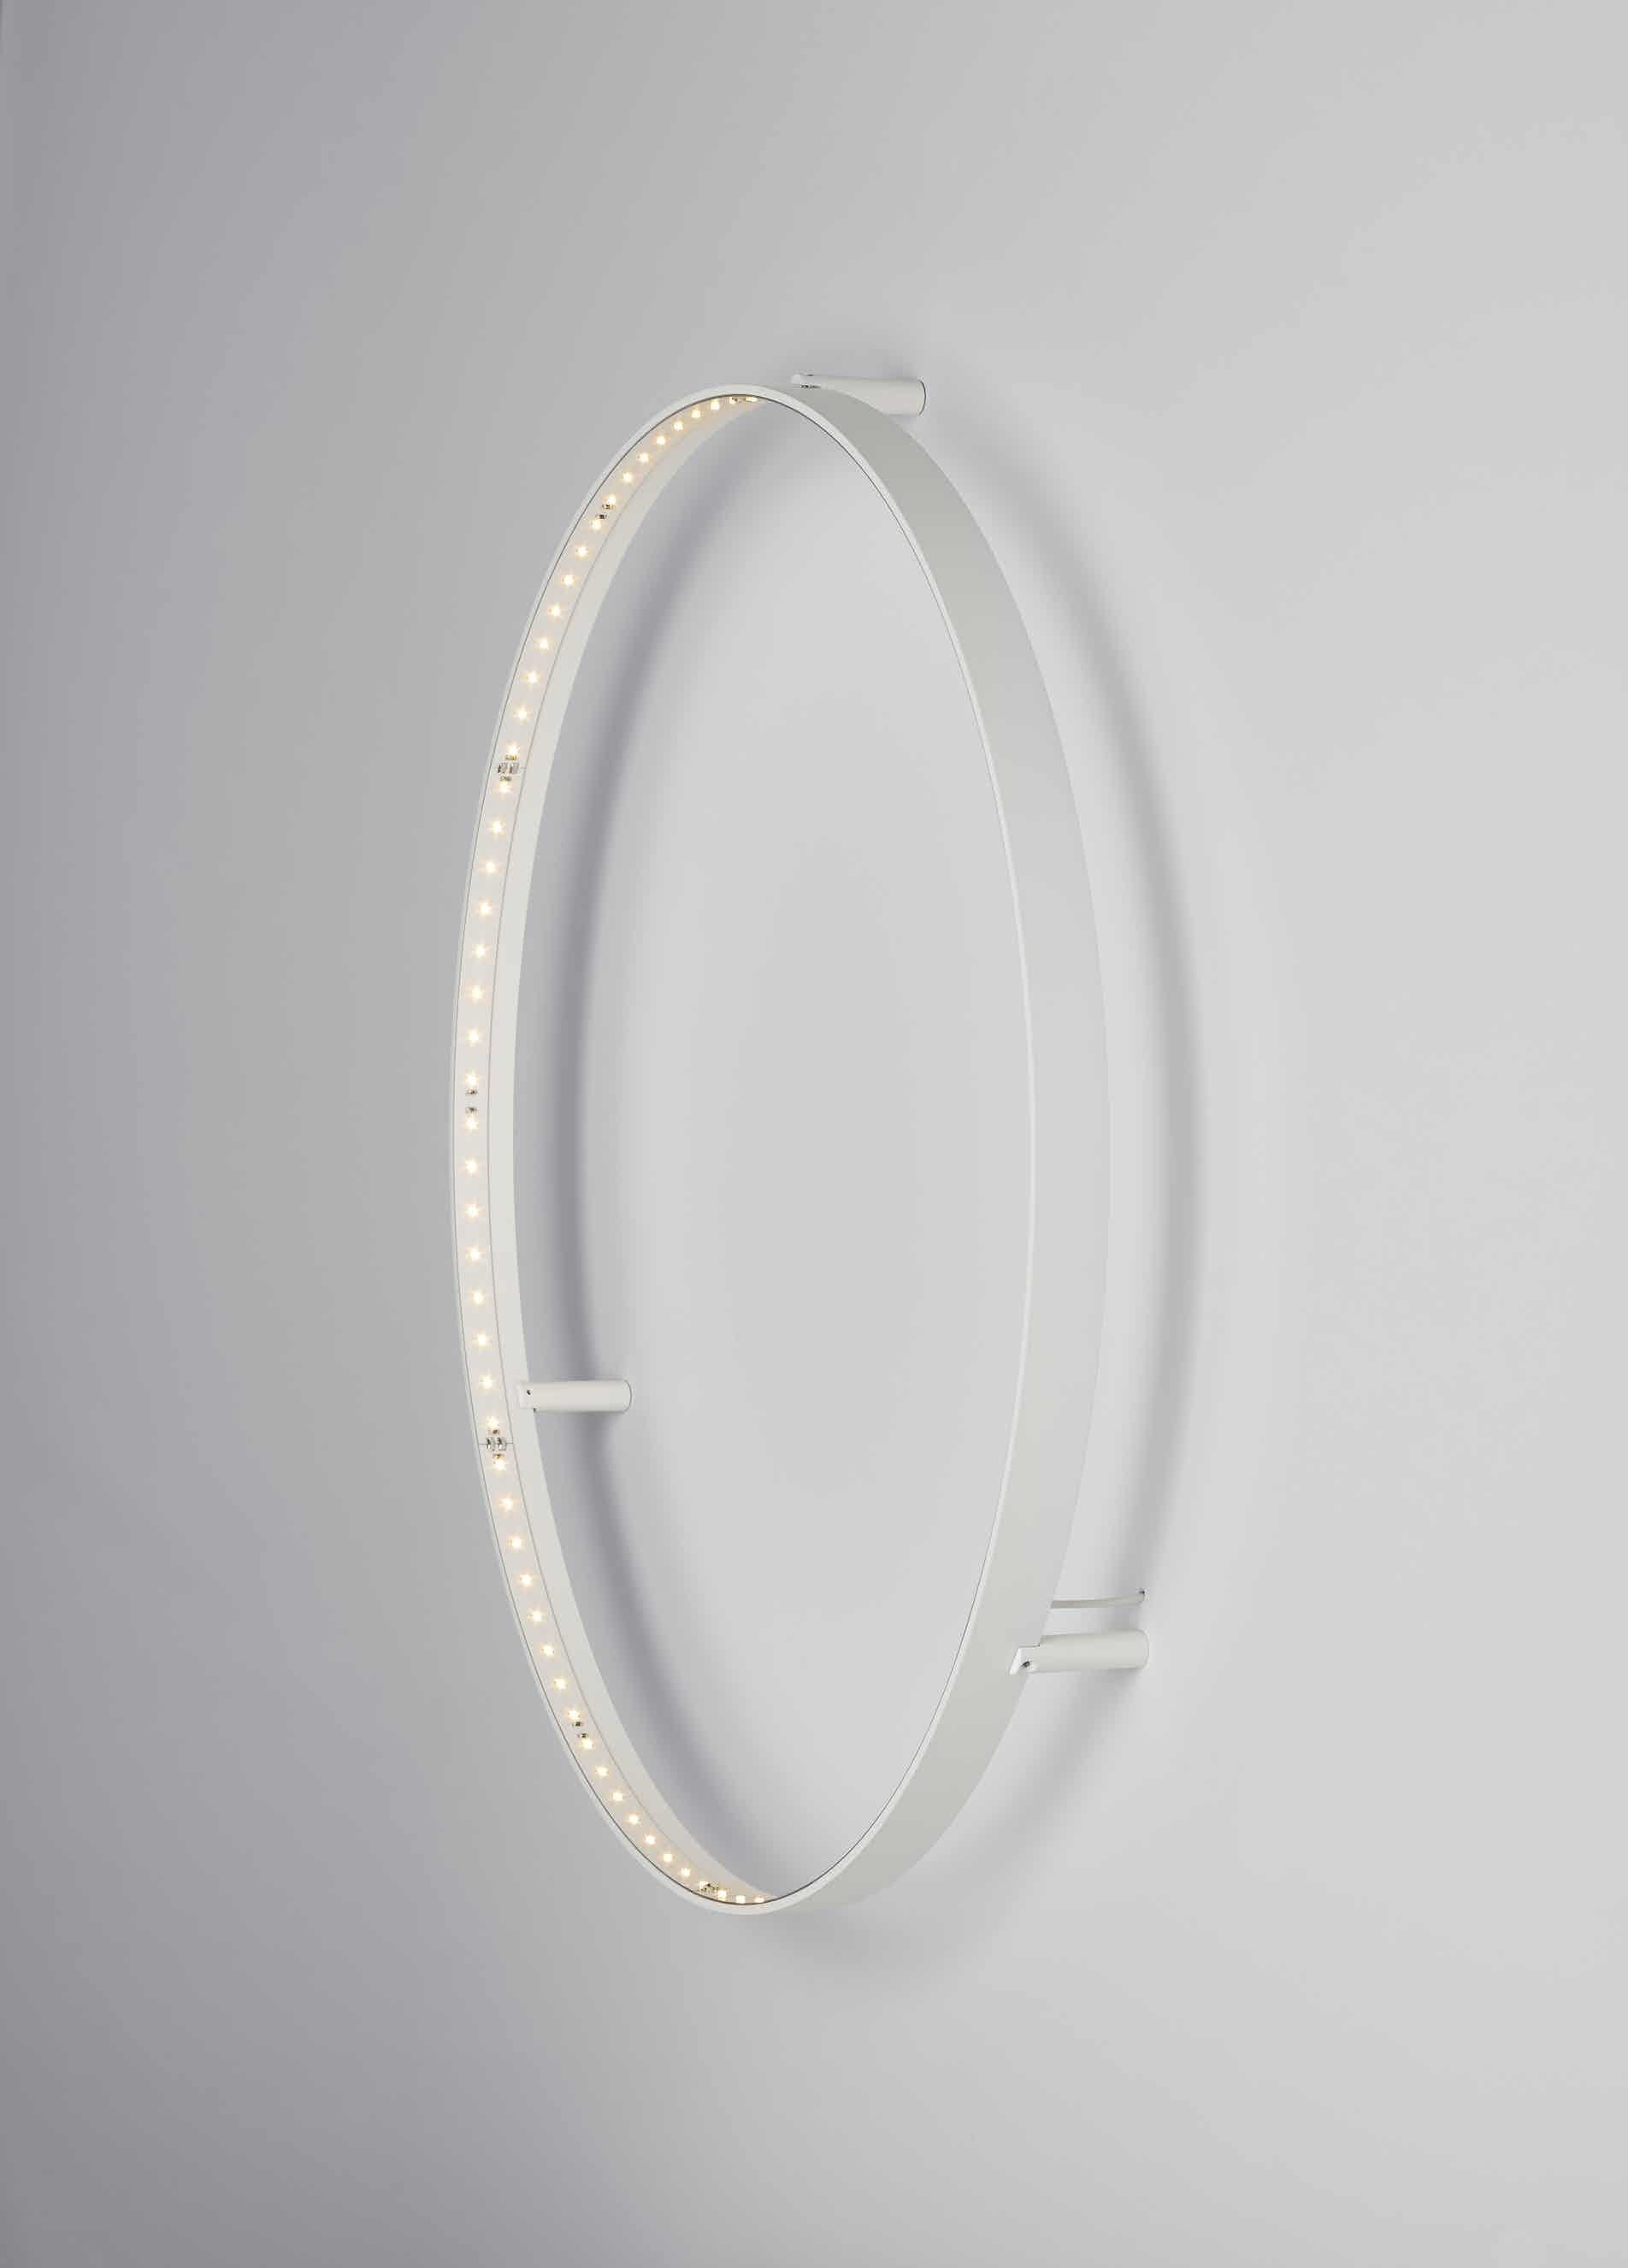 Le-deun-luminaires-curve-60-wall-lamp-white-profile-on-haute-living